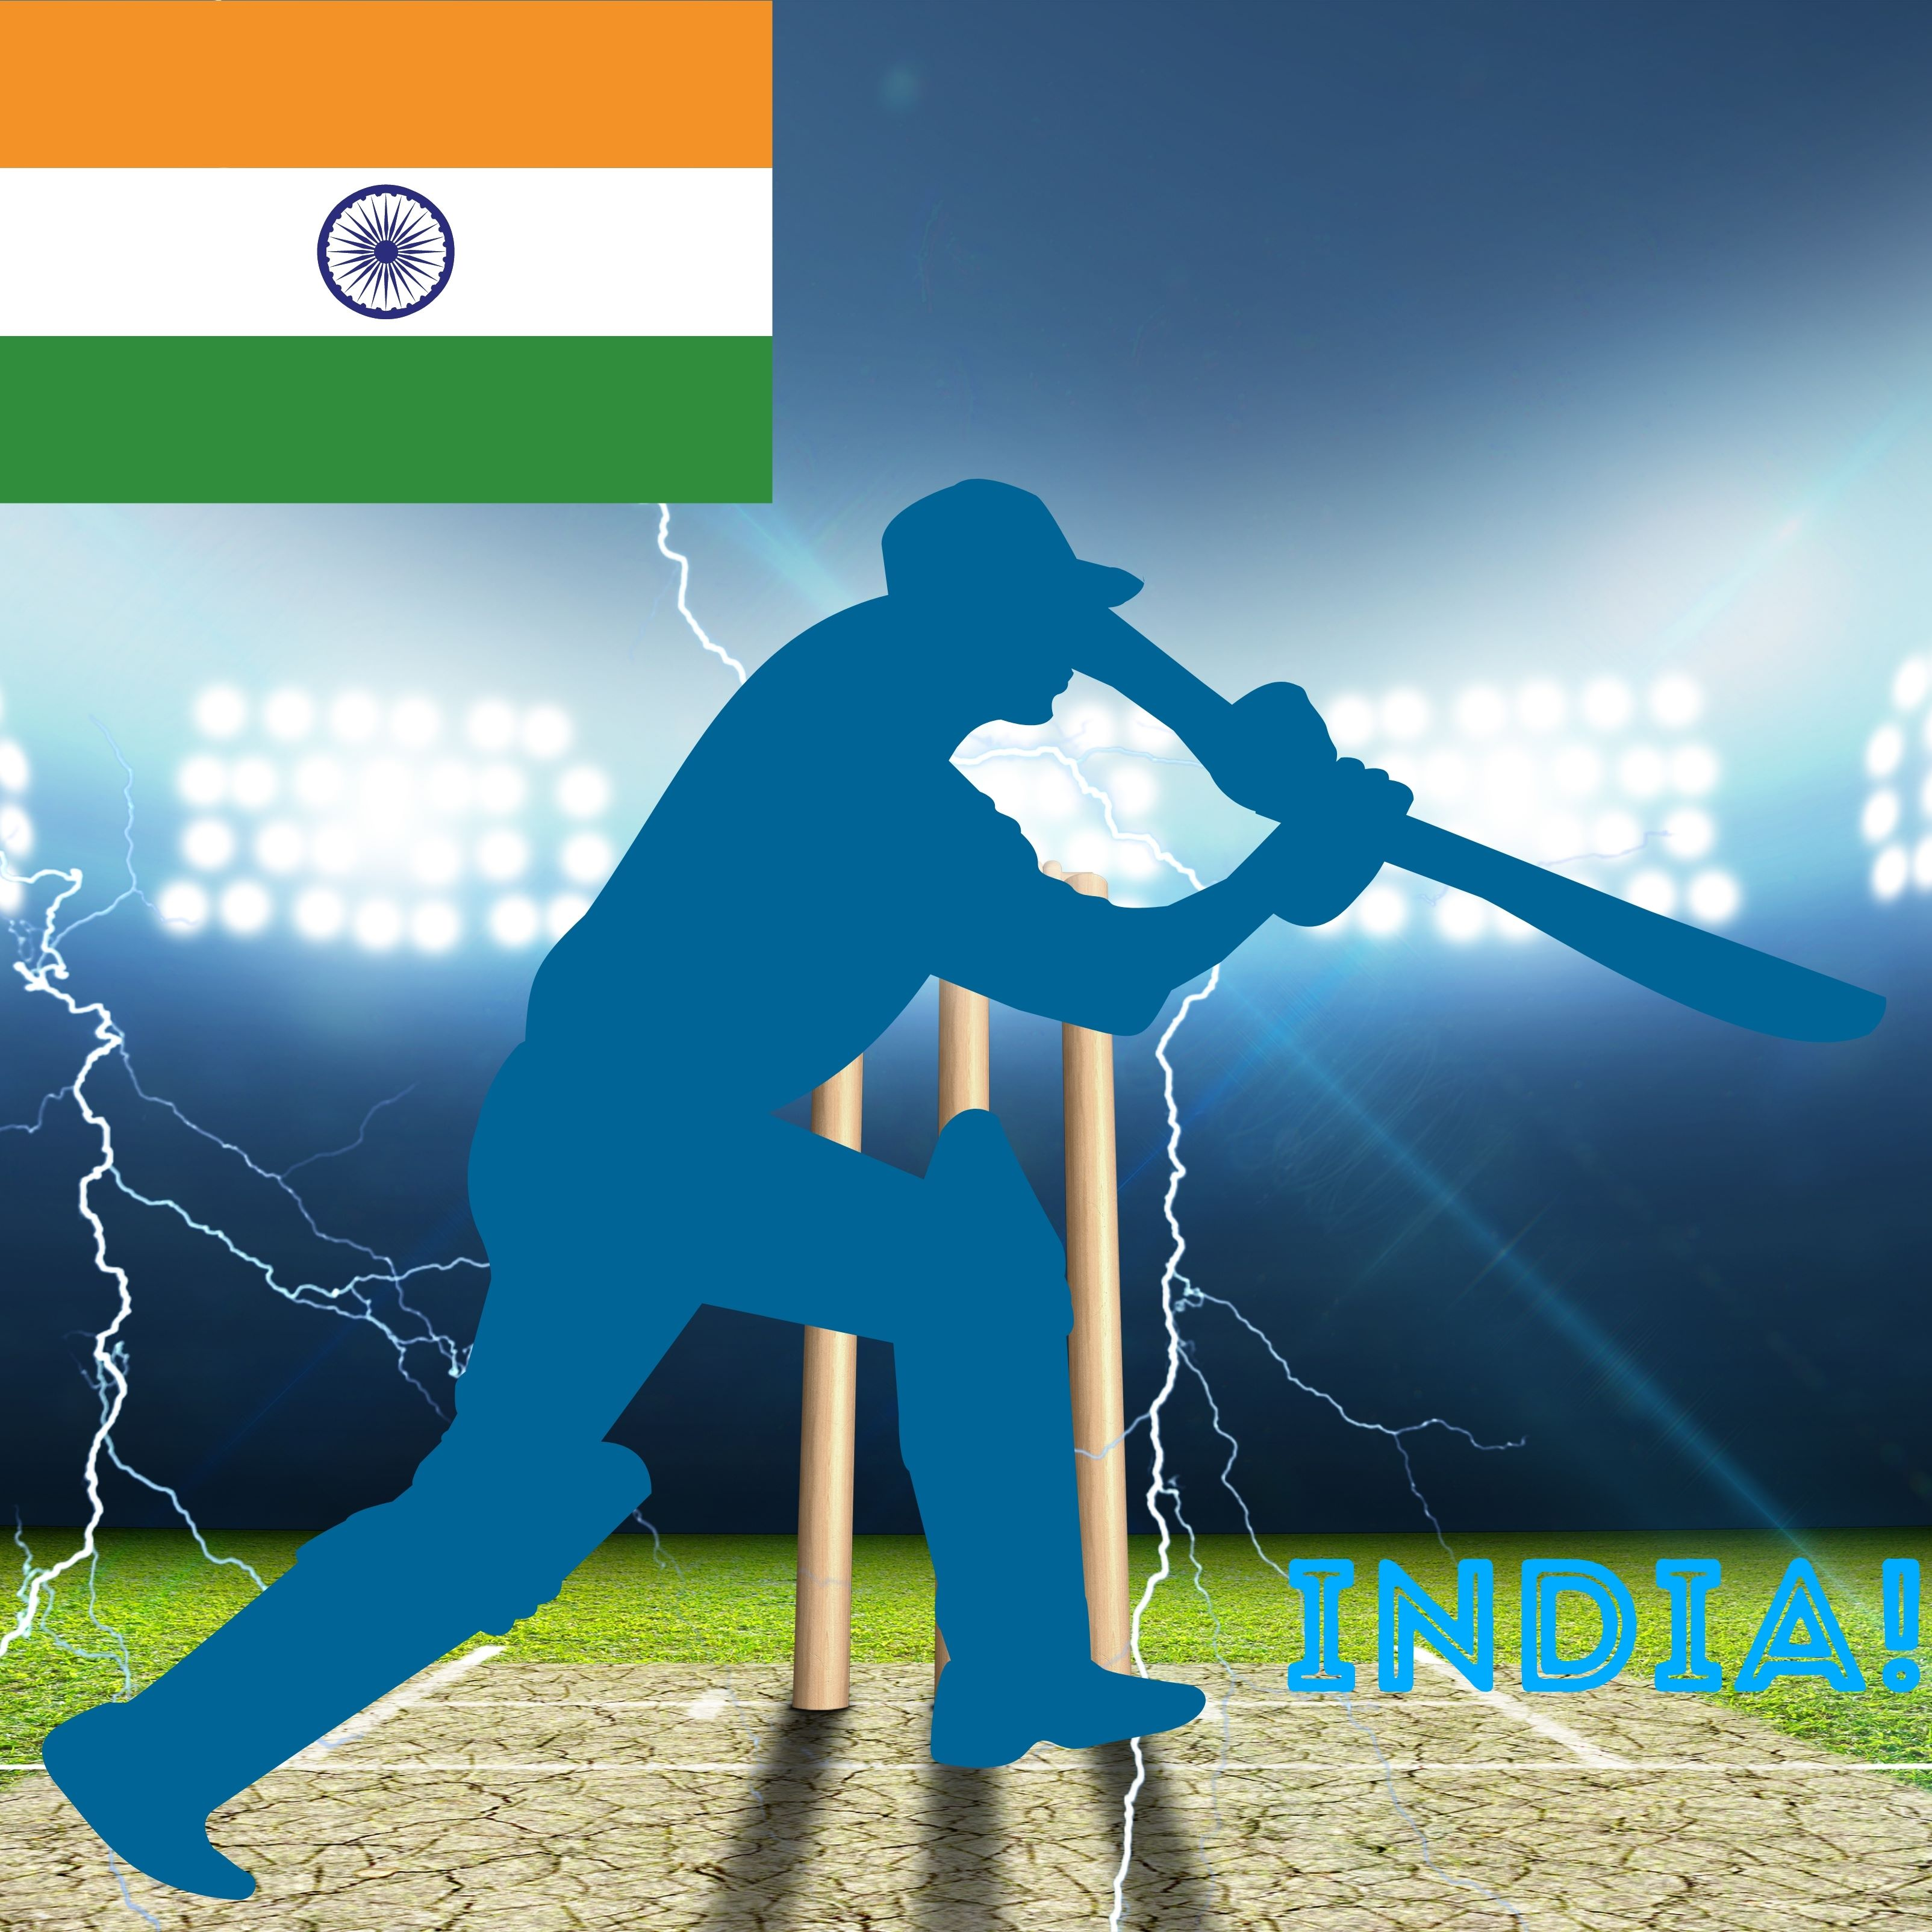 India Cricket Stadium iPad Wallpaper